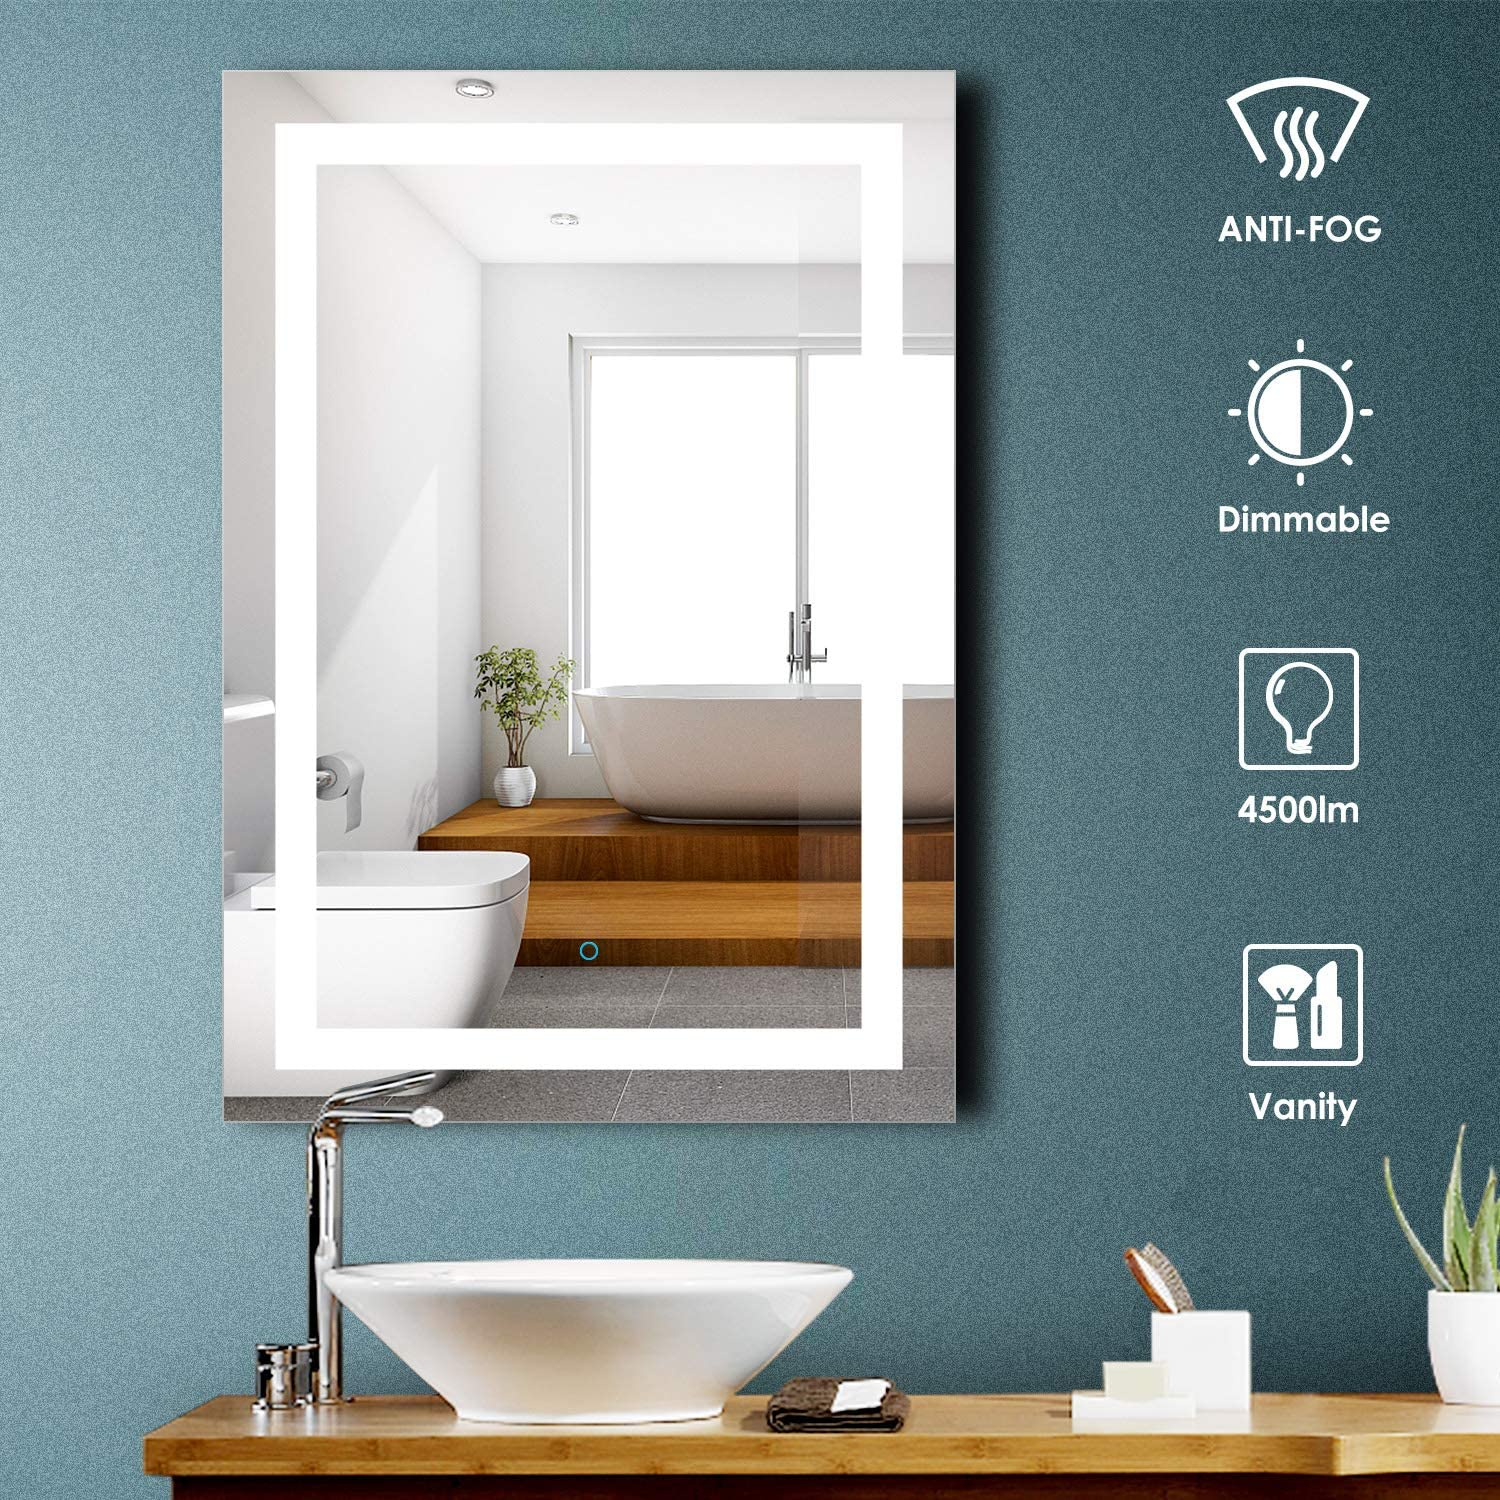 Amazon Com Aoorify 28 X 40 Inch Led Lighted Bathroom Mirror Wall Mounted Vanity Mirror With Light 5000k Daylight Dimmable Touch Switch Control Memory Touch Button Kitchen Dining